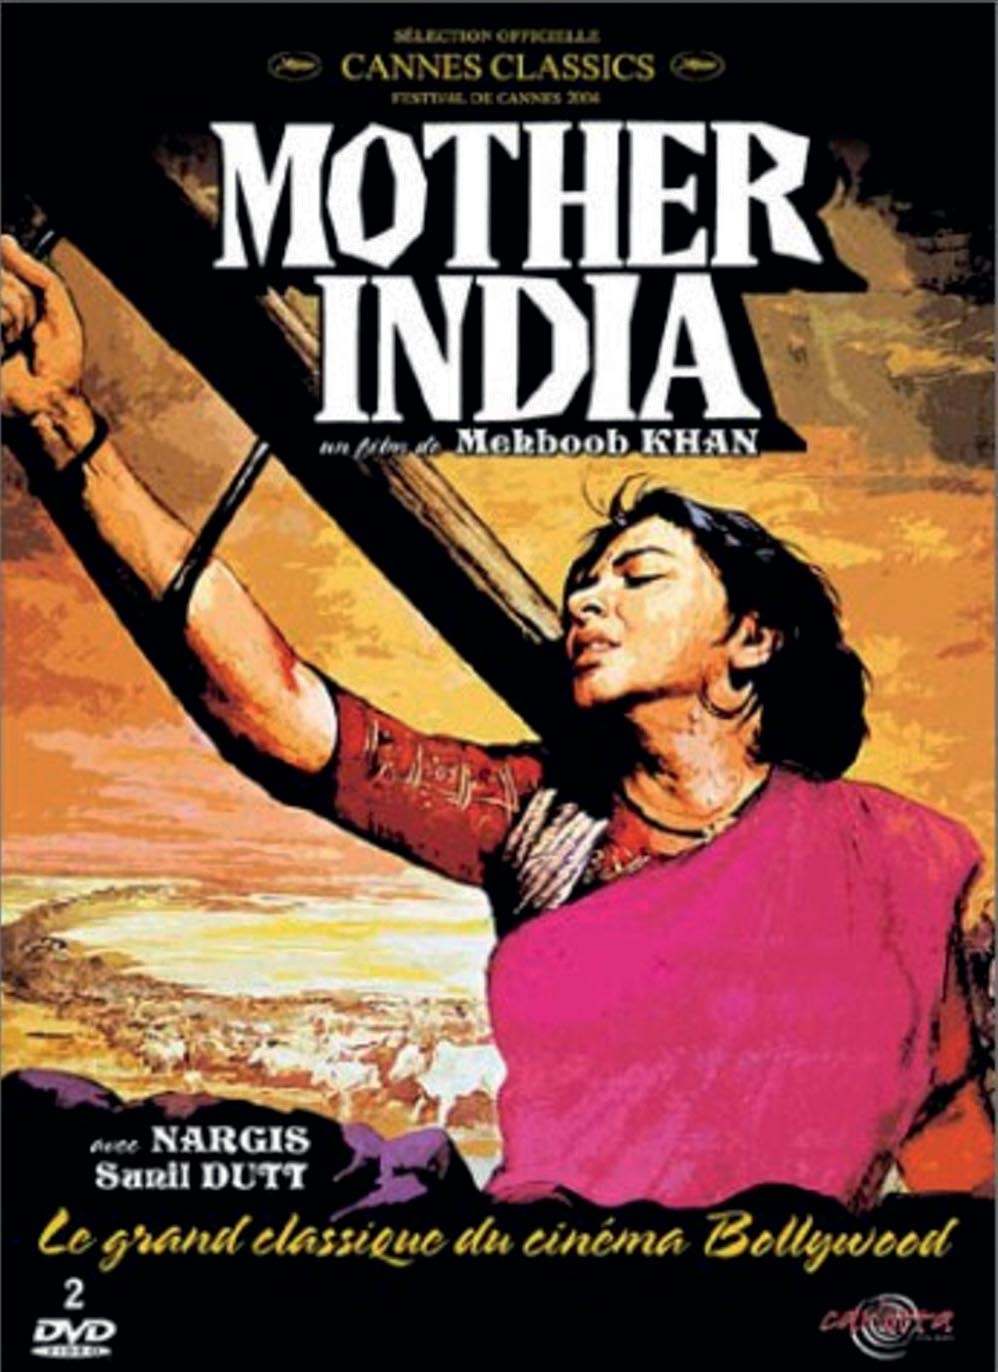 Le nouveau visage de la Mother India